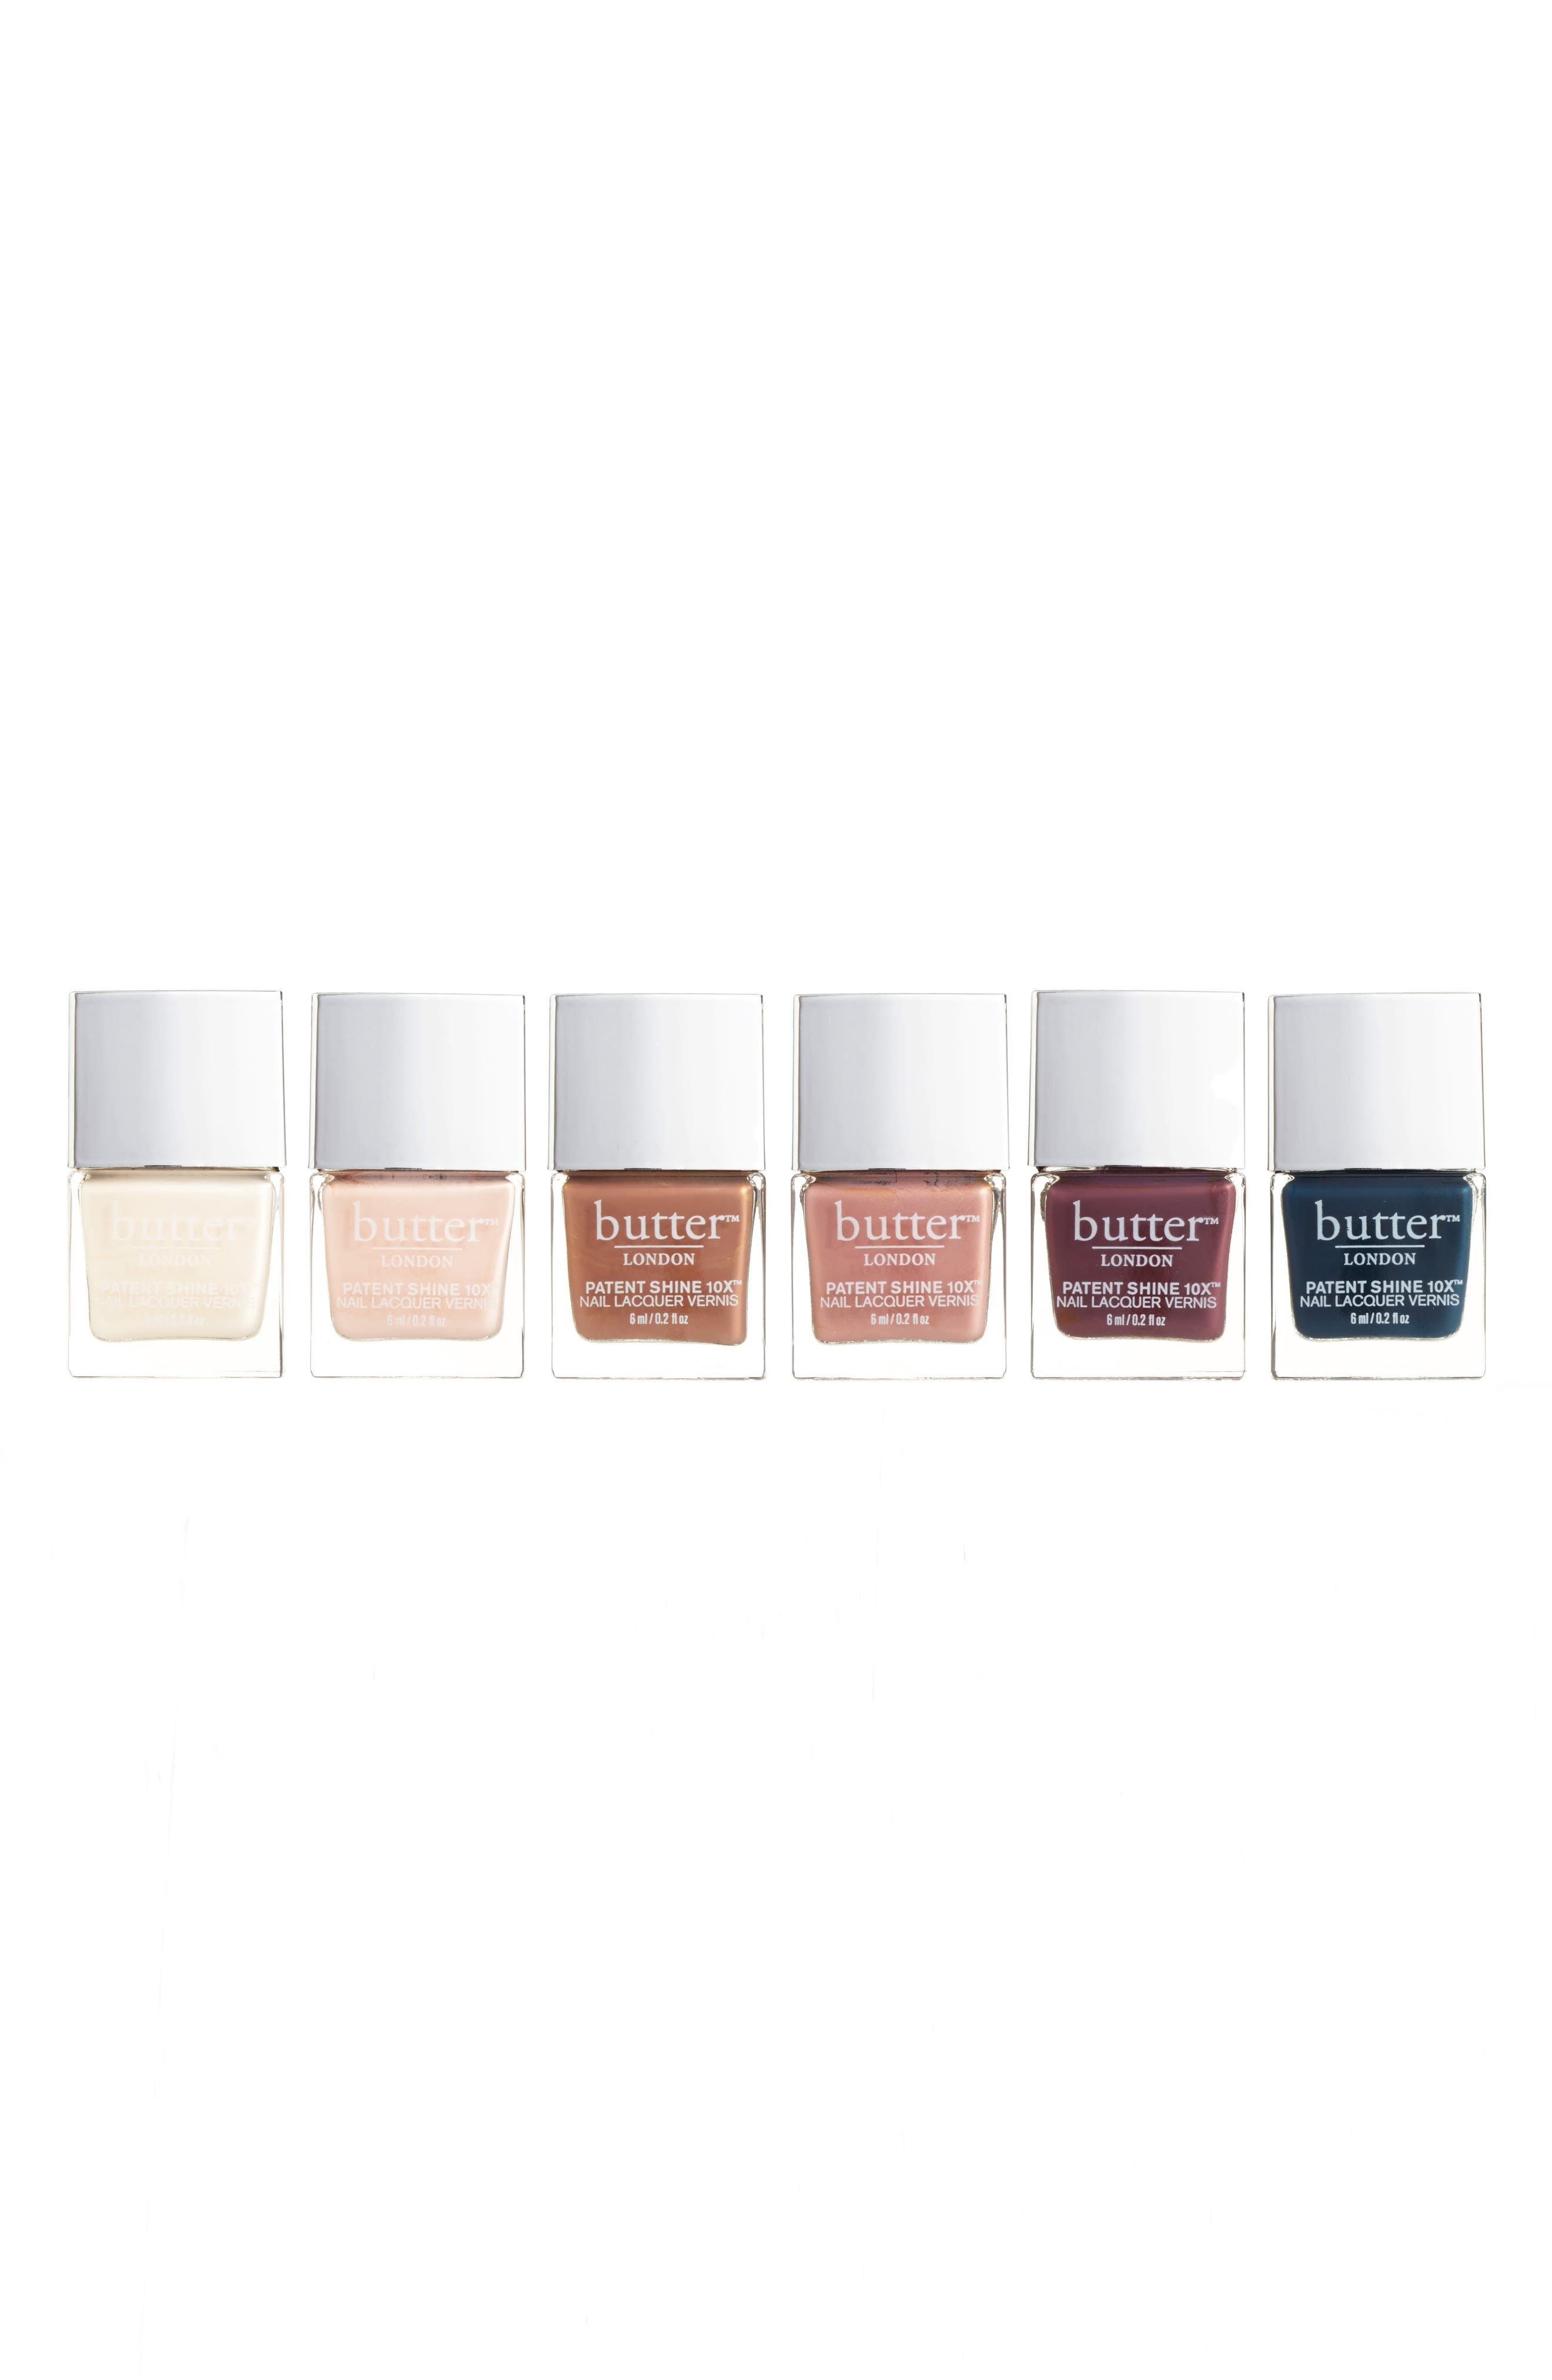 butter LONDON Cashmere Cremes Patent Shine 10X® Nail Lacquer Set ($72 Value)